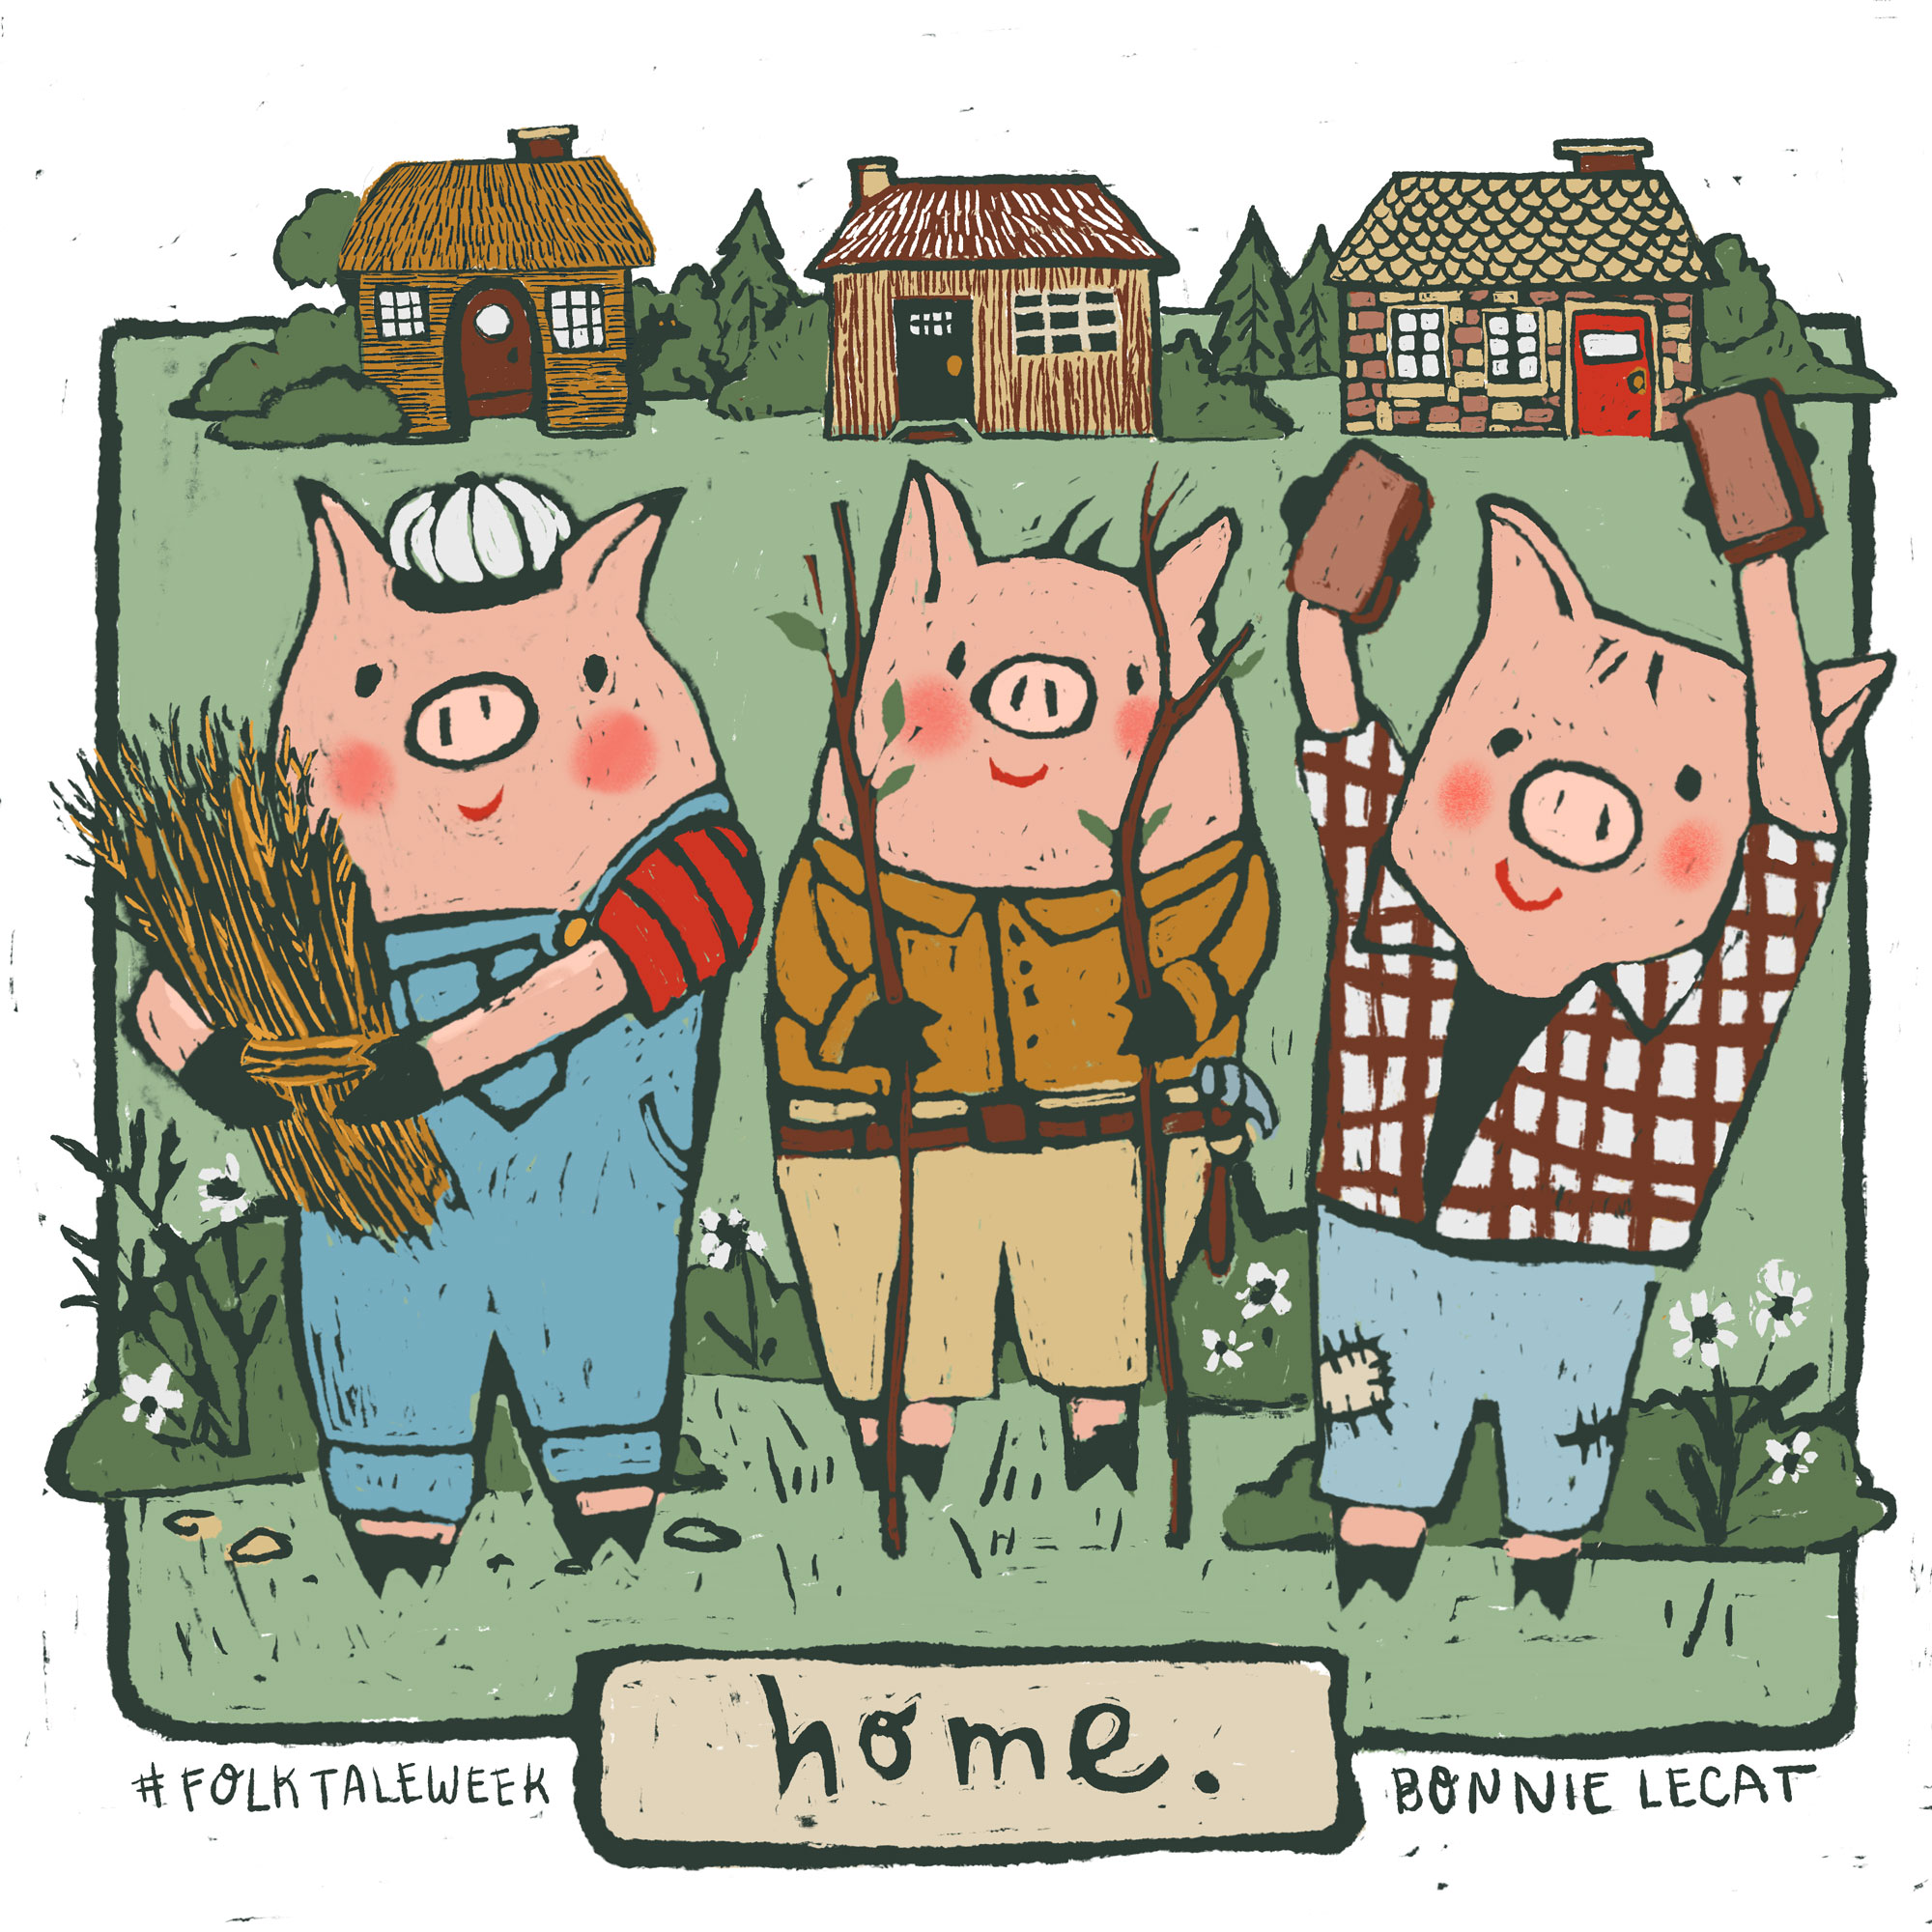 Three Little Pigs by Bonnie Lecat